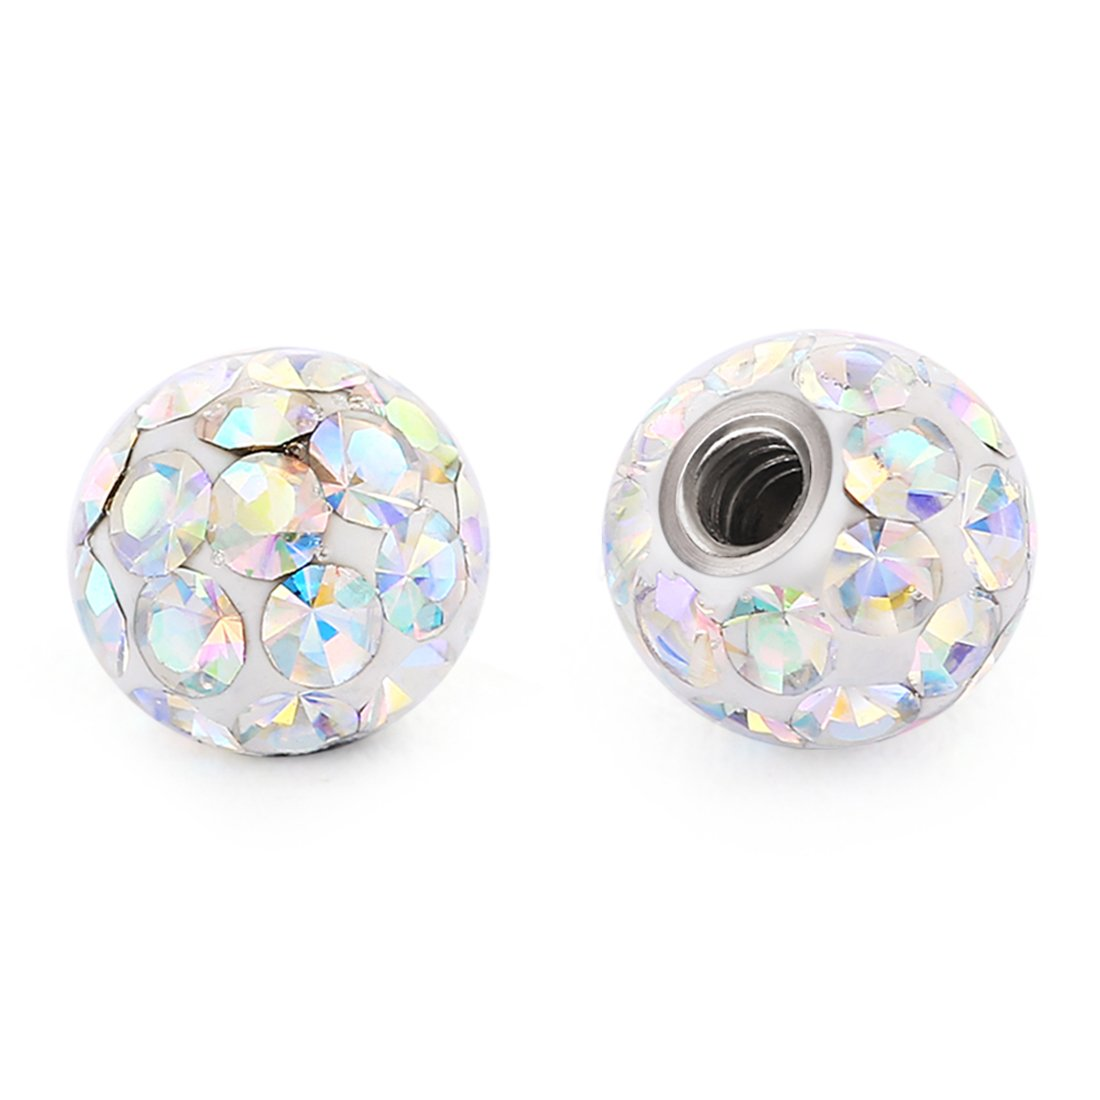 COTTVOTT 2Pcs 4mm(16G) 6mm(14G) 8mm(14G) Body Piercing Jewelry Replacement Sparkling Crystal Screw Balls generic